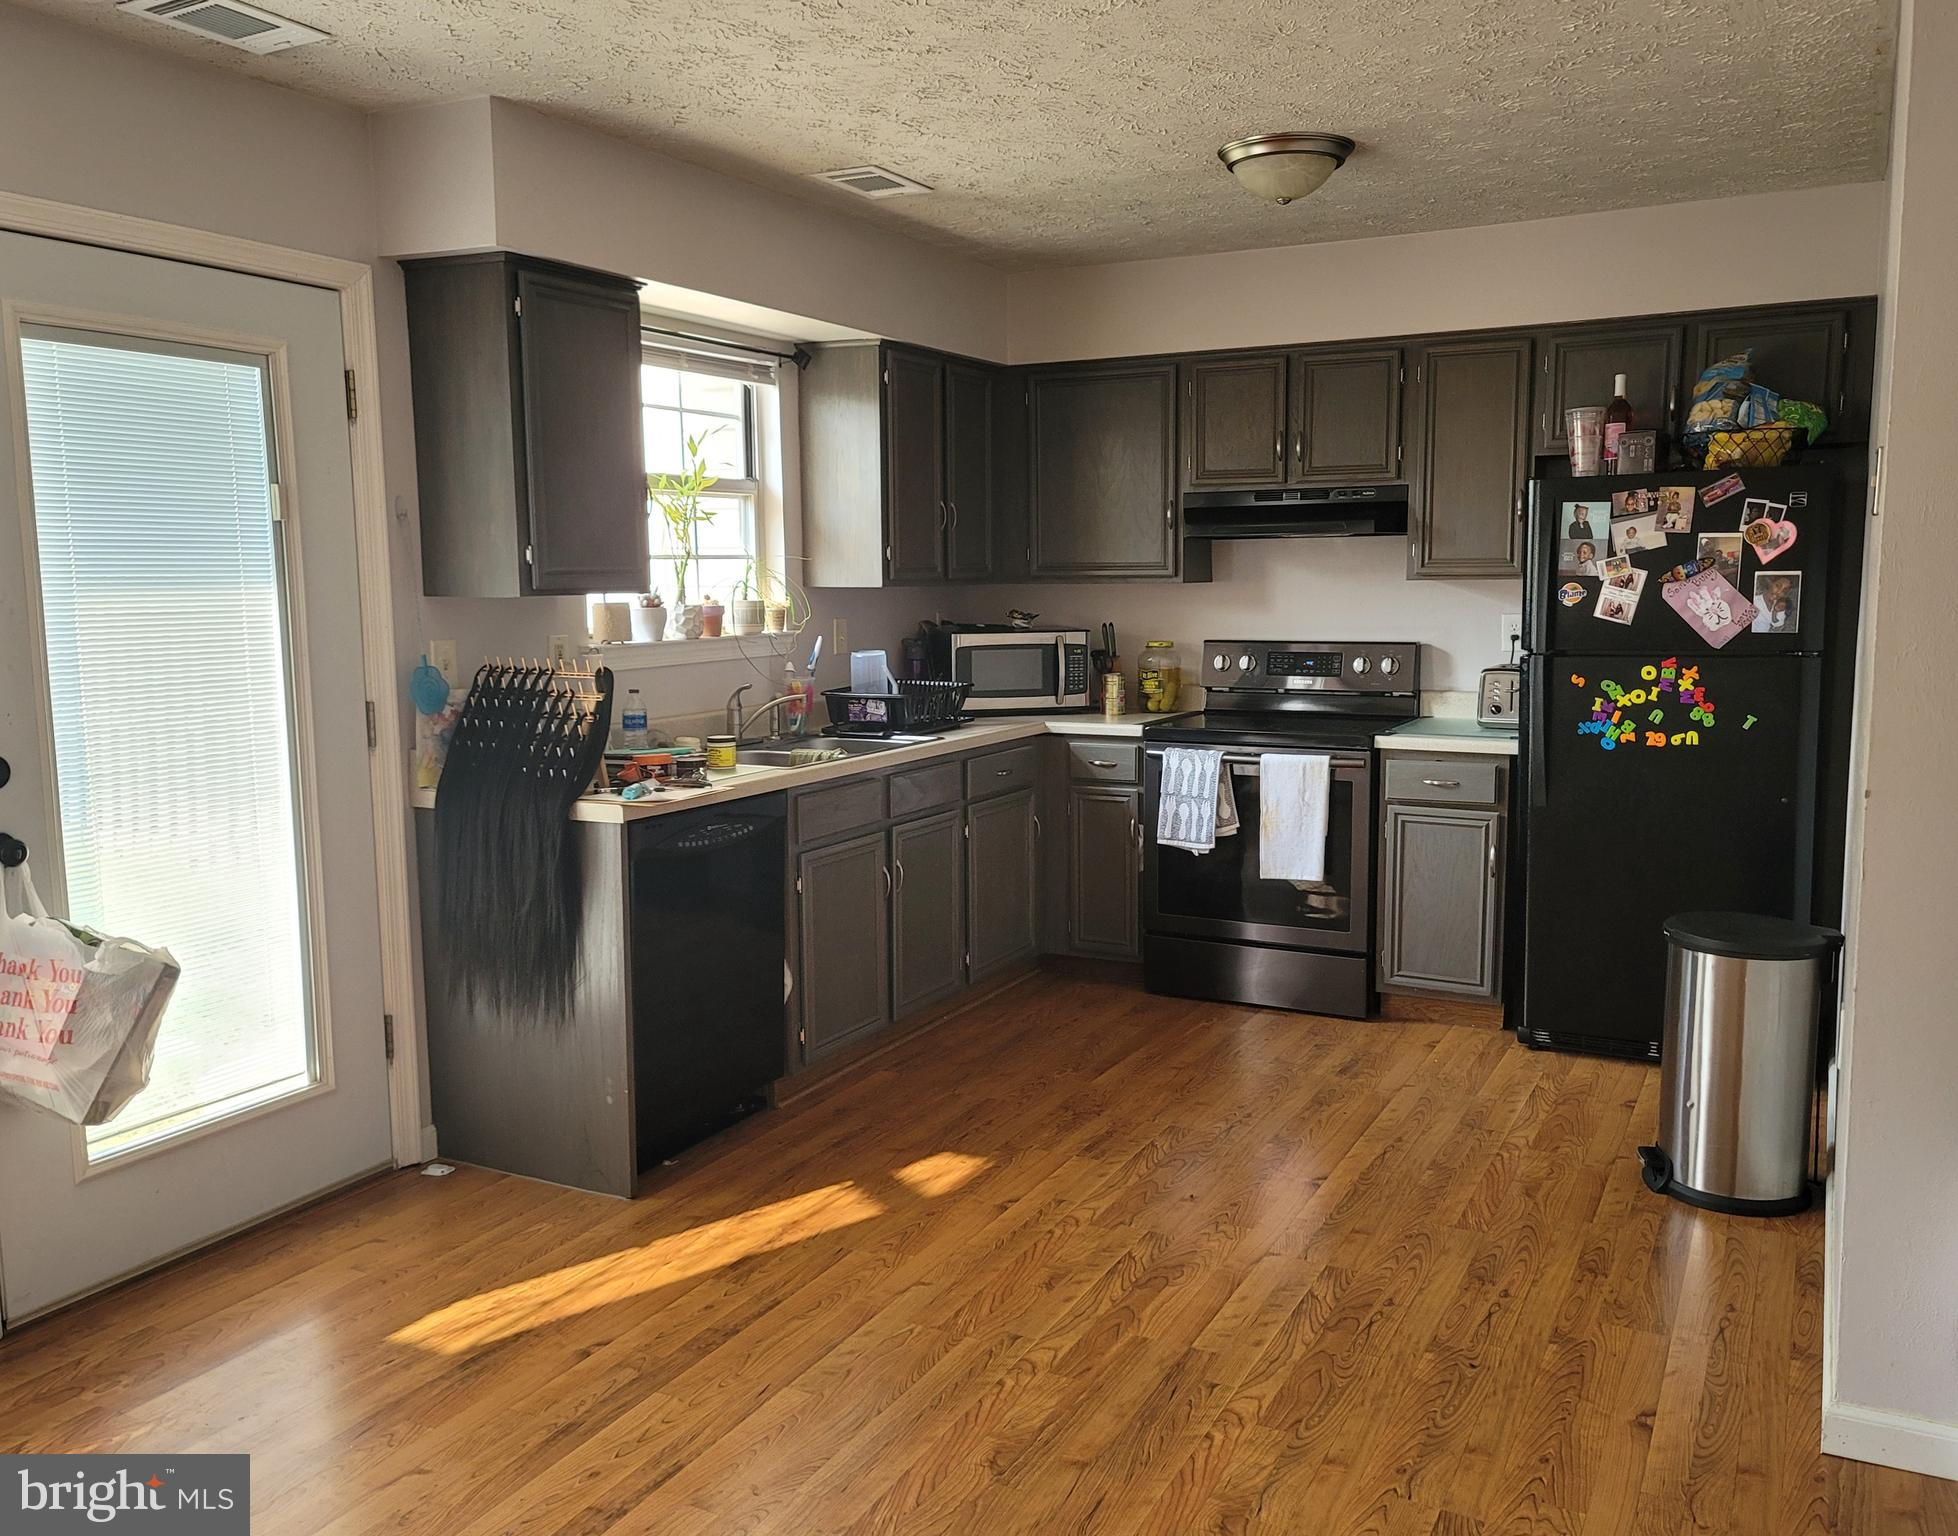 LOVELY 3 bedroom, 1.5 bath townhouse with fenced back yard includes upgraded bathrooms, kitchen floo